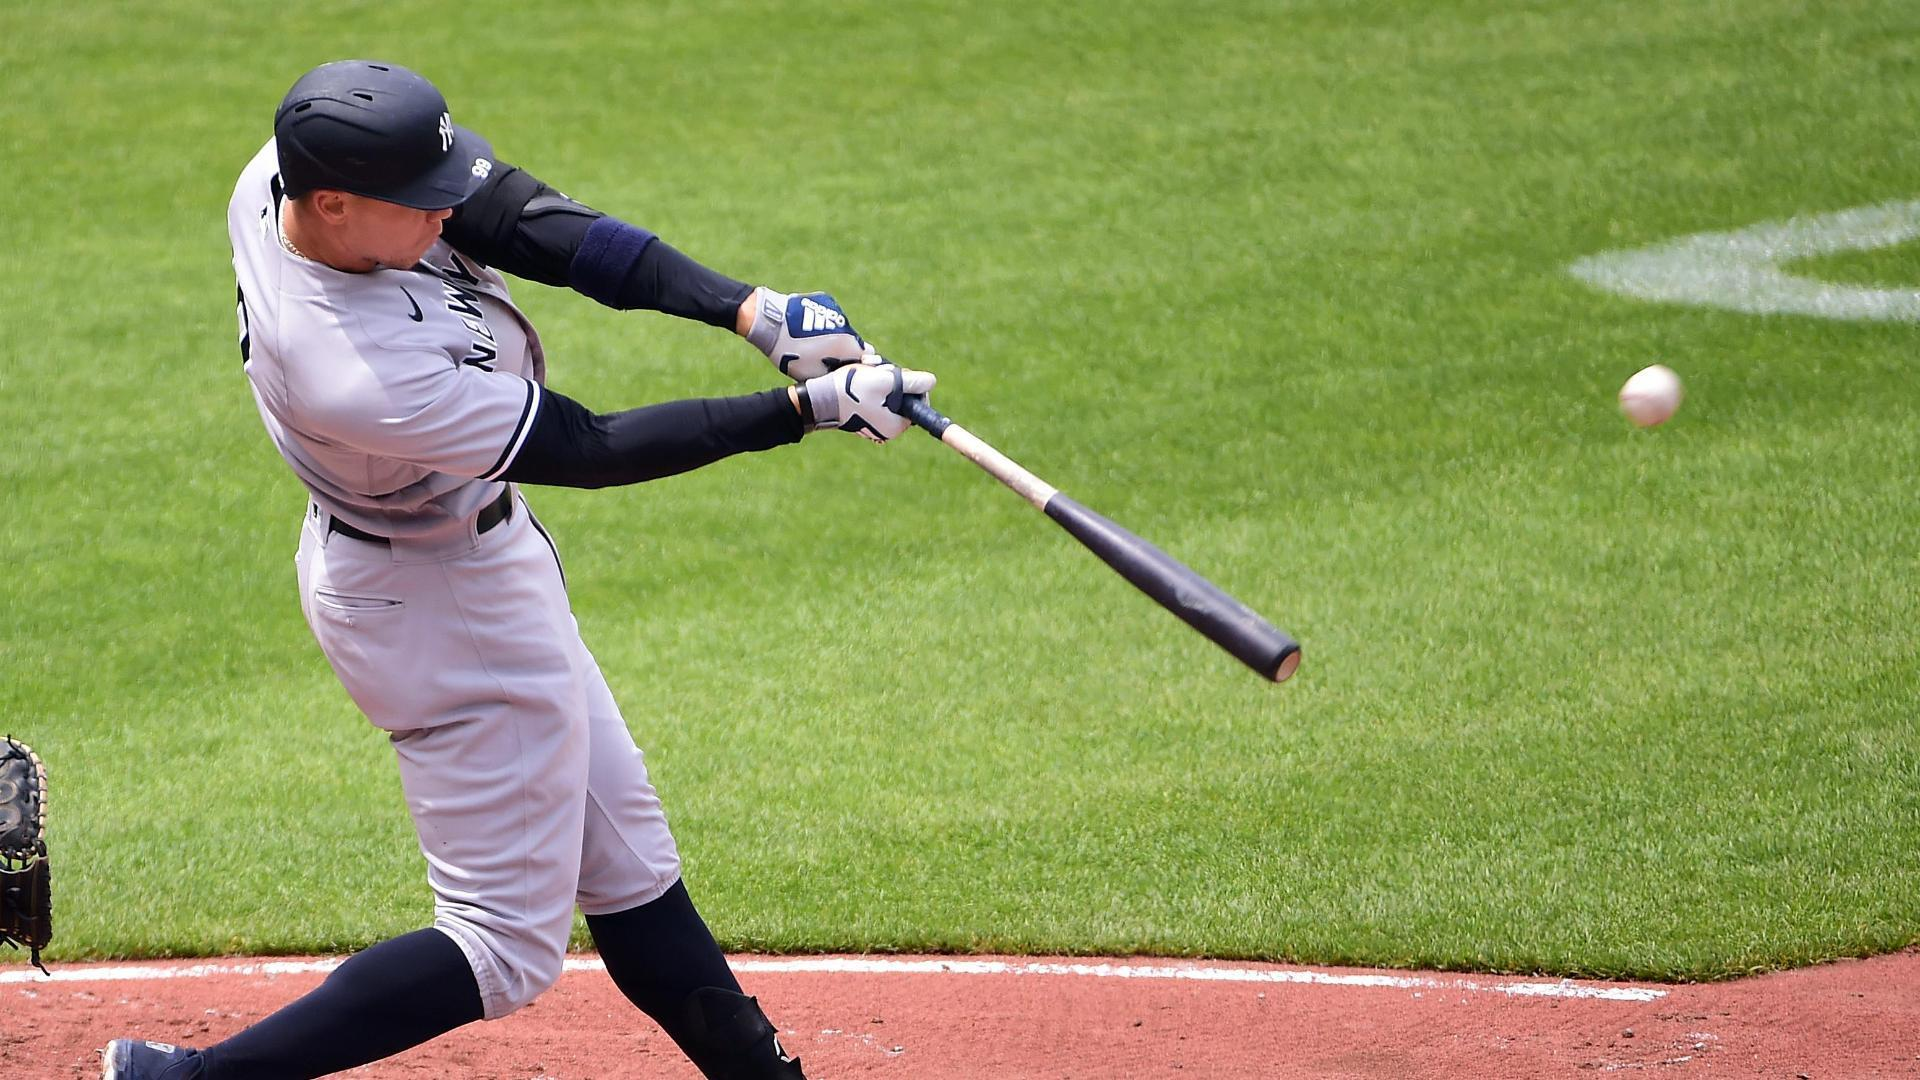 Verdict is in ... Judge hits another home run vs. the O's